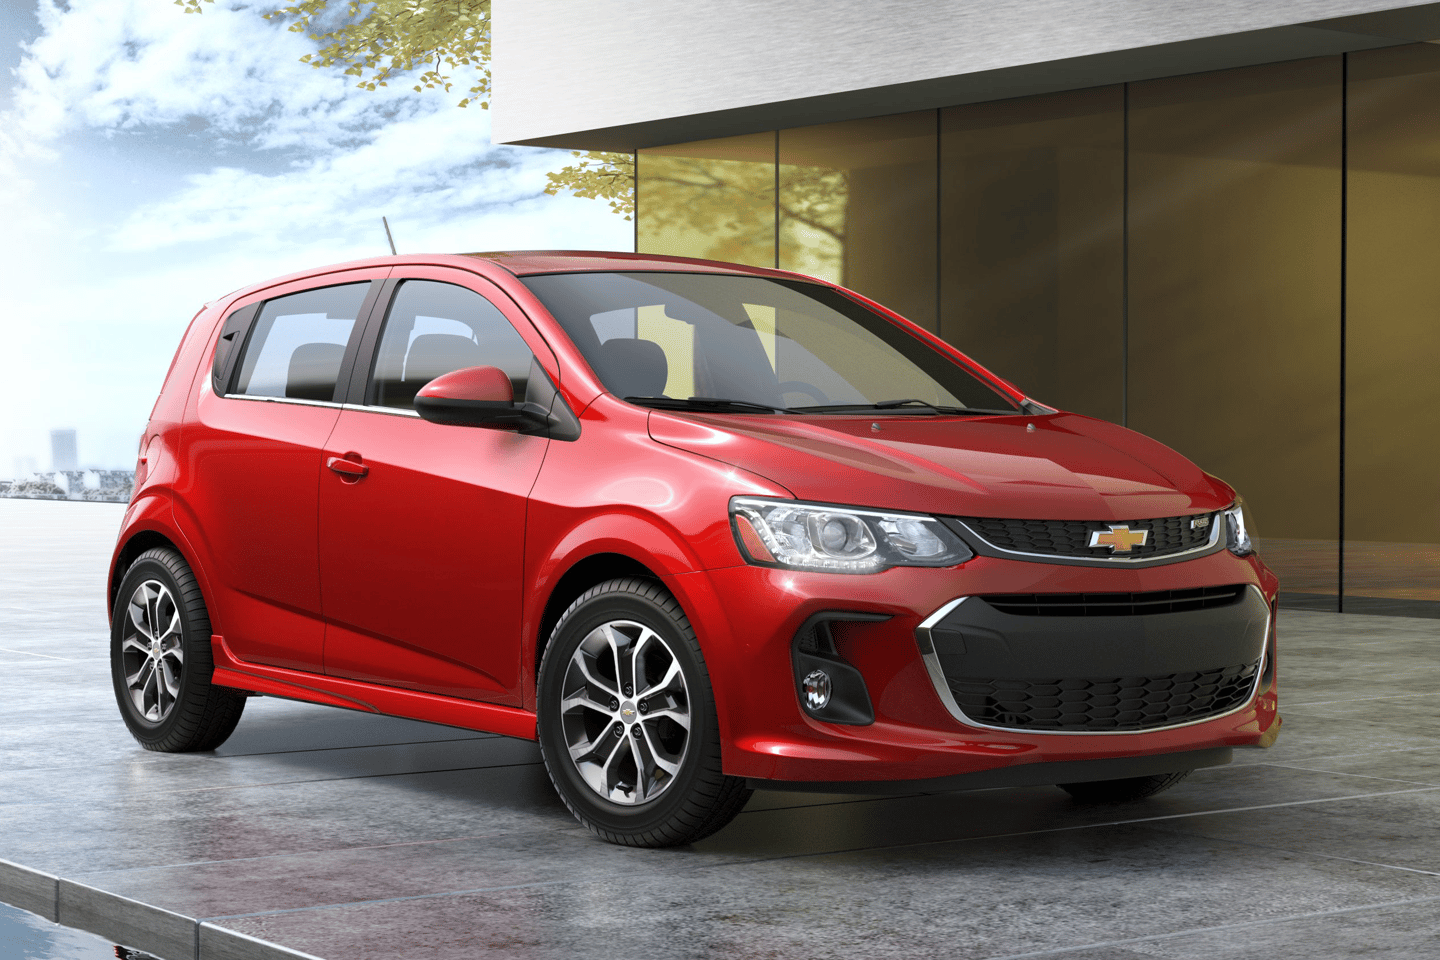 American brands fared better than they ever have previously and the most reliable car in the survey was the Chevrolet Sonic, which achieved a score of 103 PP100